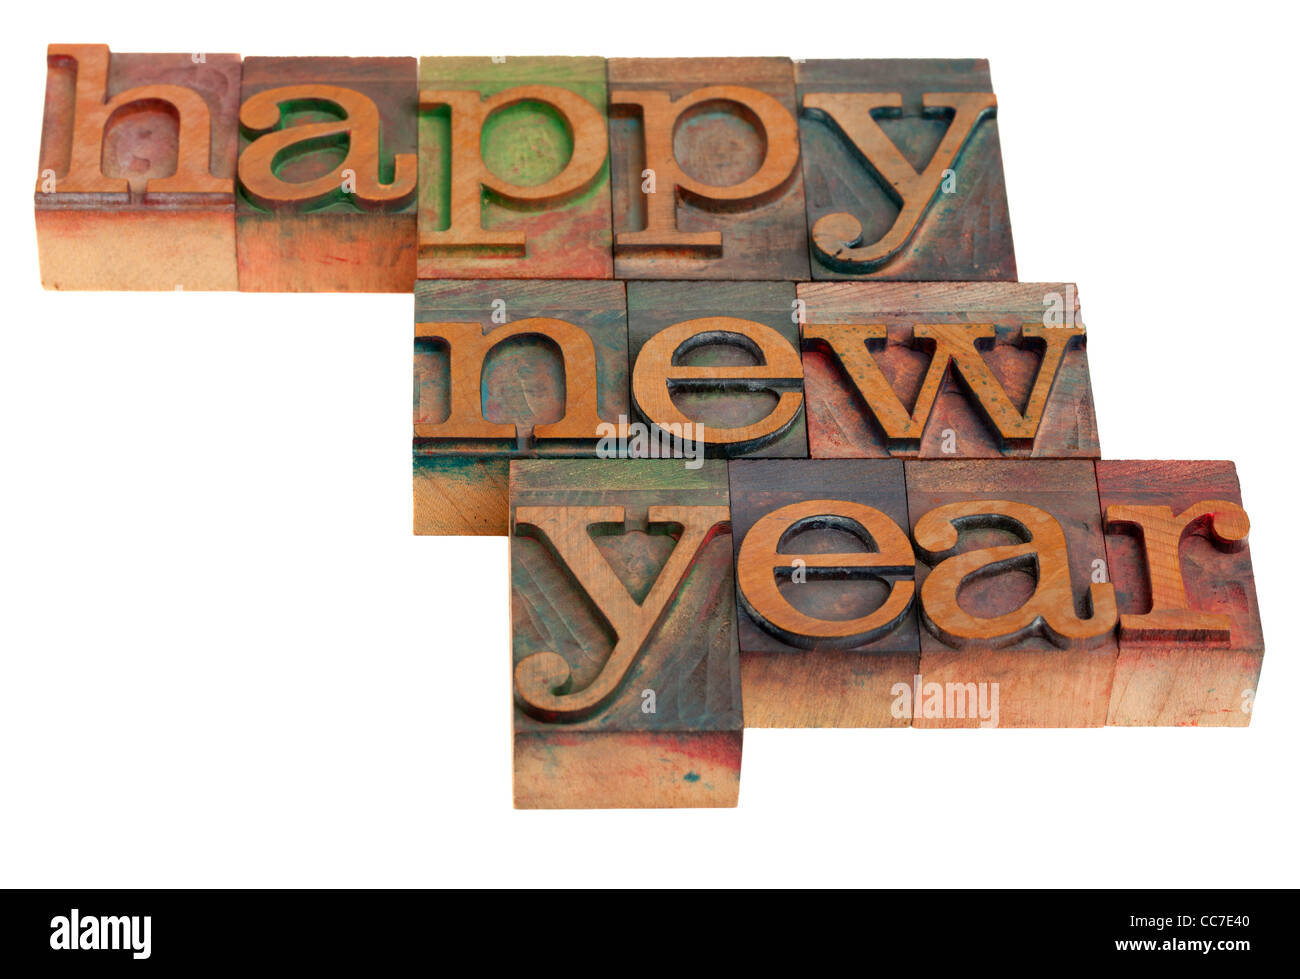 Happy New Year greetings in vintage wooden letterpress printing blocks, isolated on white - Stock Image